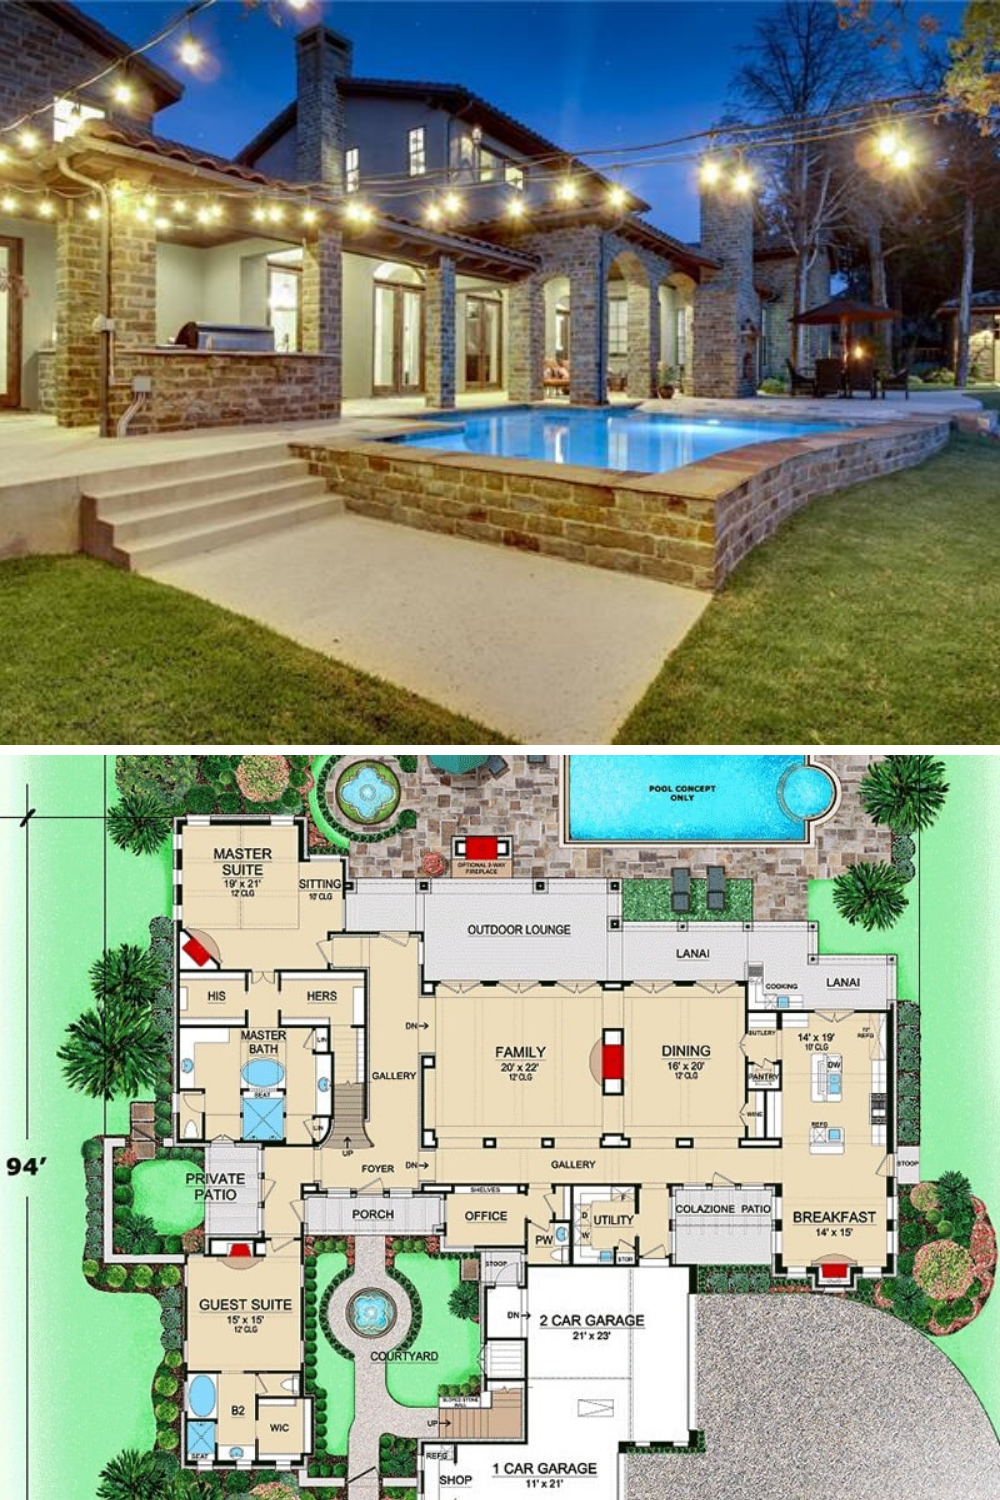 4 Bedroom Two Story Tuscan Home With Courtyard Floor Plan Tuscan House Pool House Plans Courtyard House